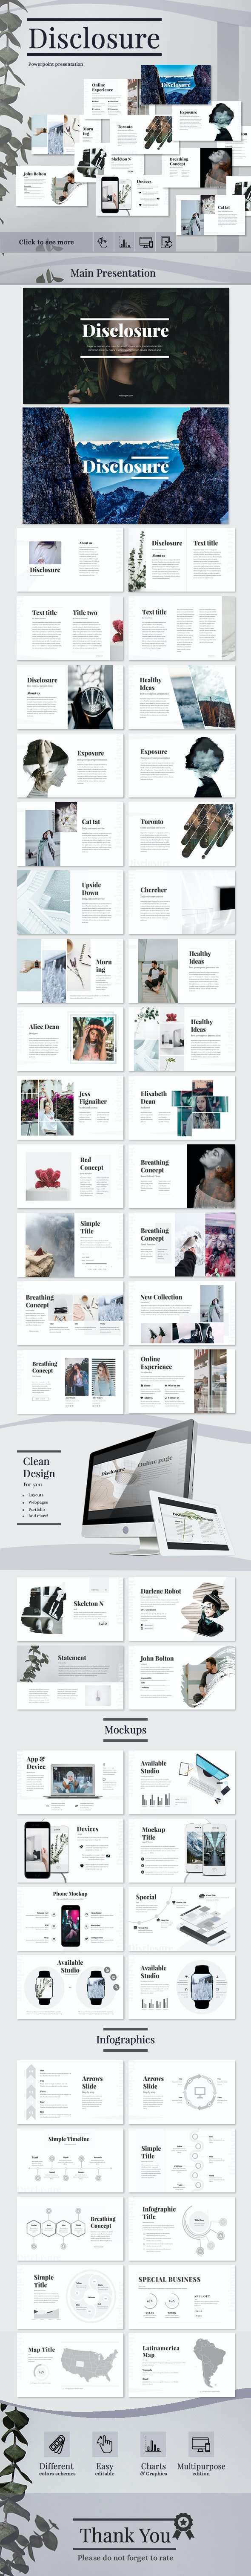 Disclosure - Business PowerPoint Templates